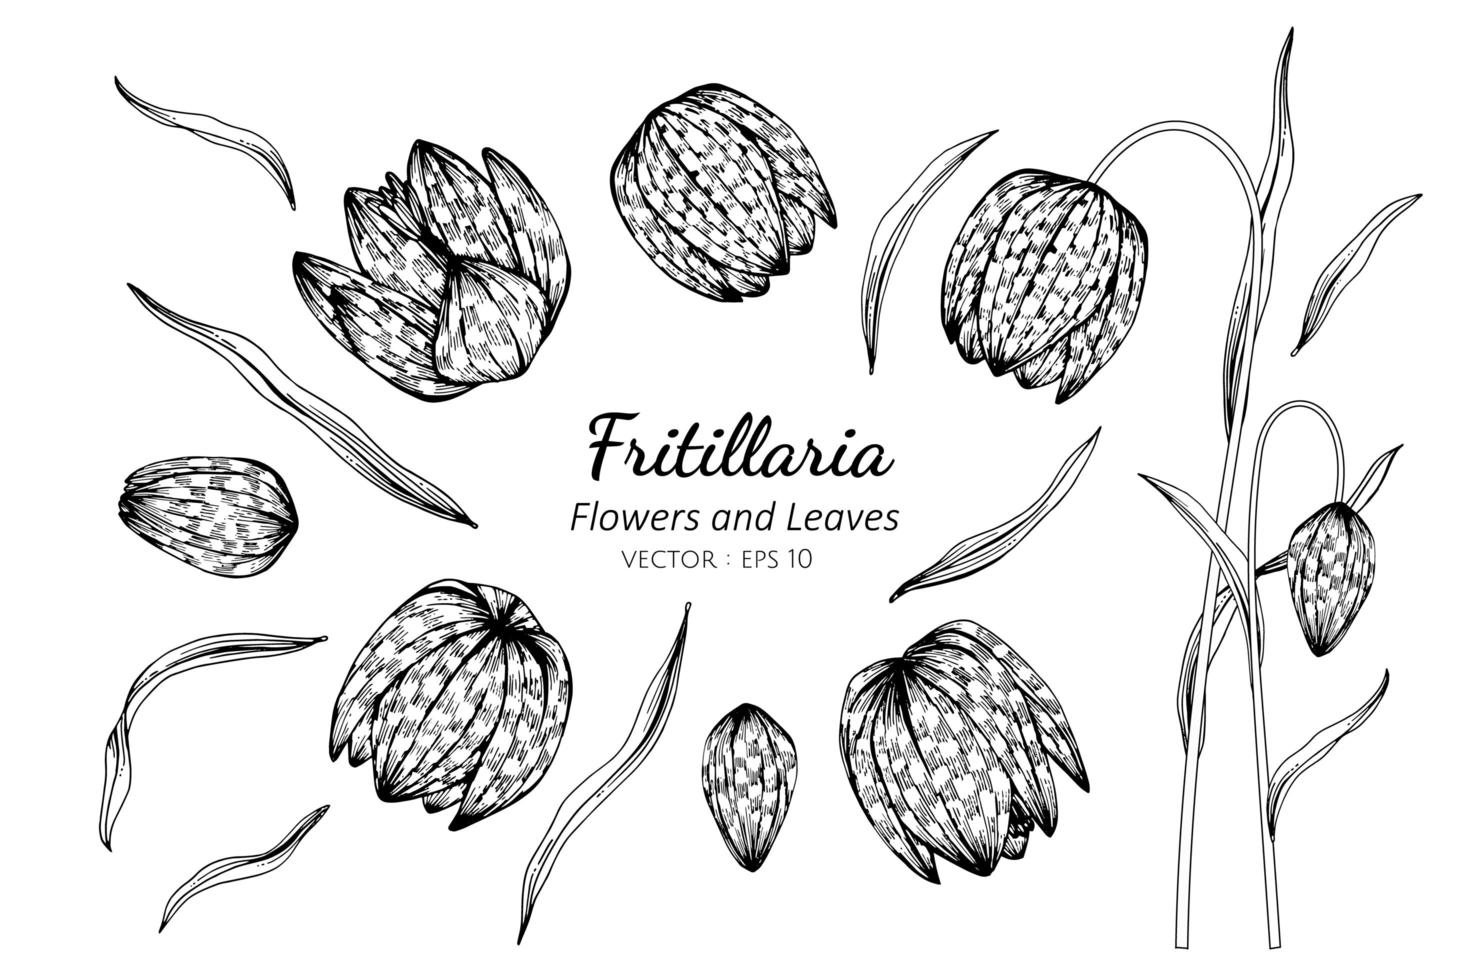 Collection of Fritillaria flower and leaves vector